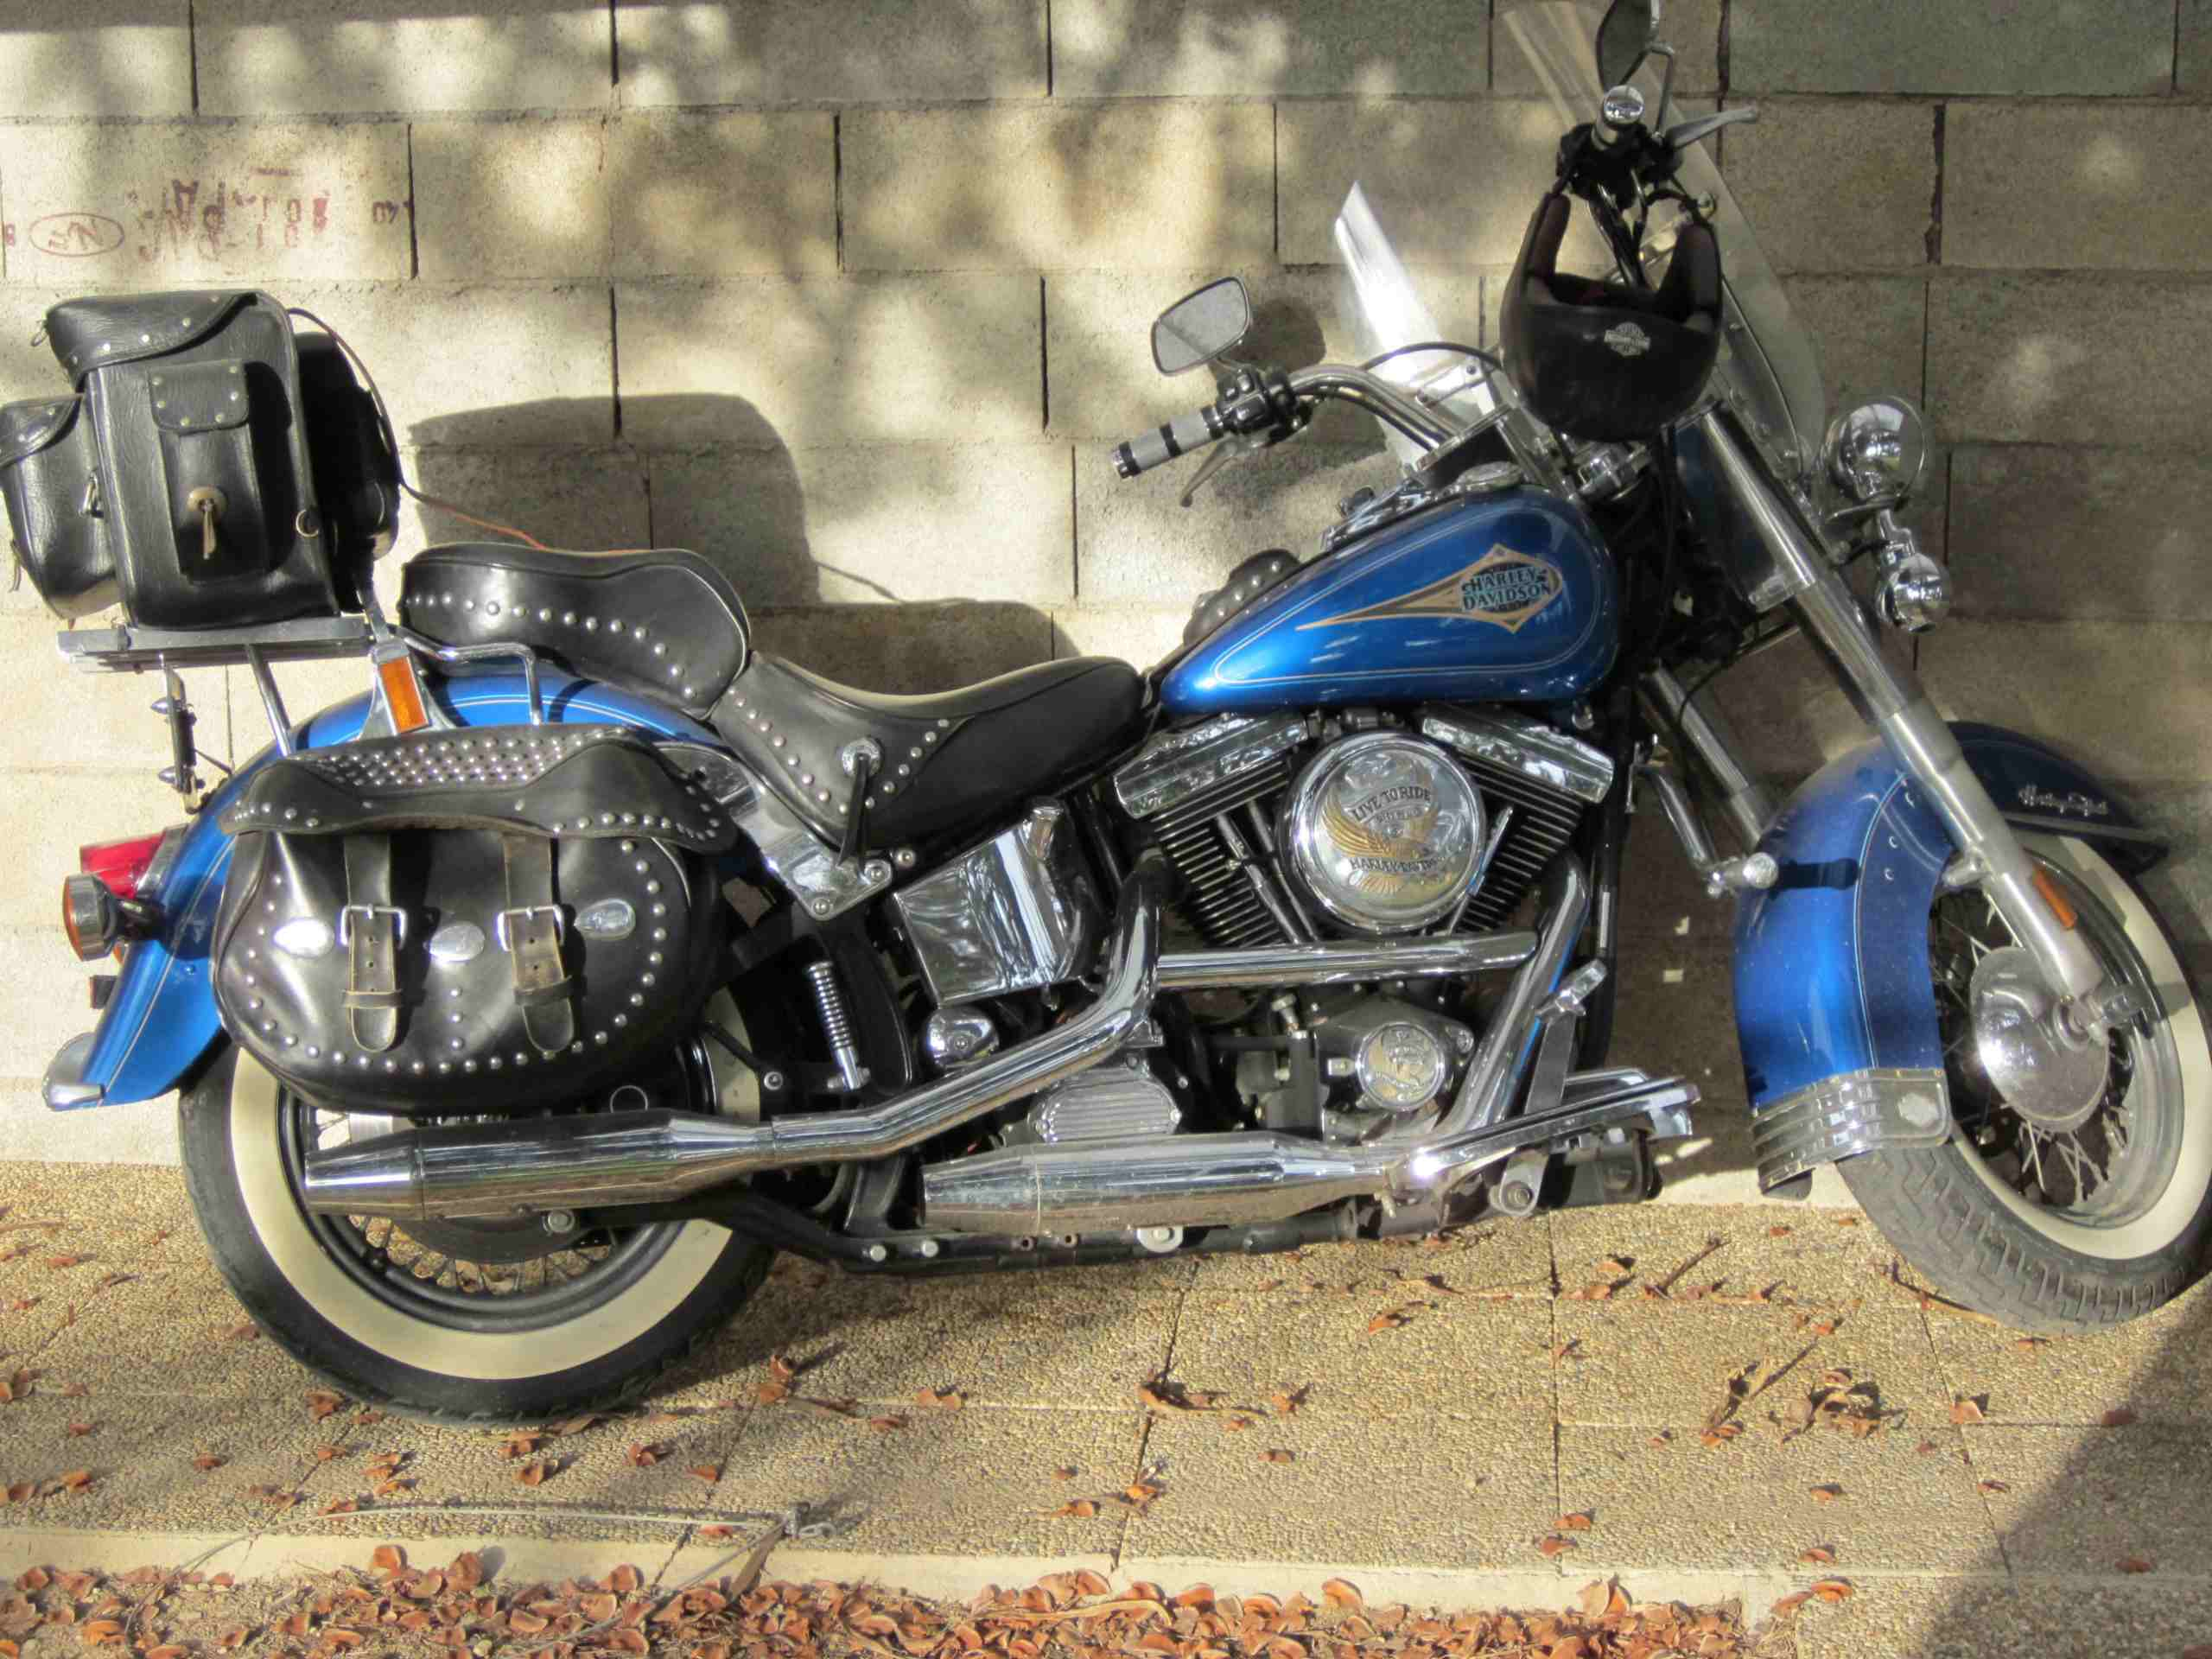 Harley-Davidson Heritage Softail Classic 1340 cm3 USA année 1995.